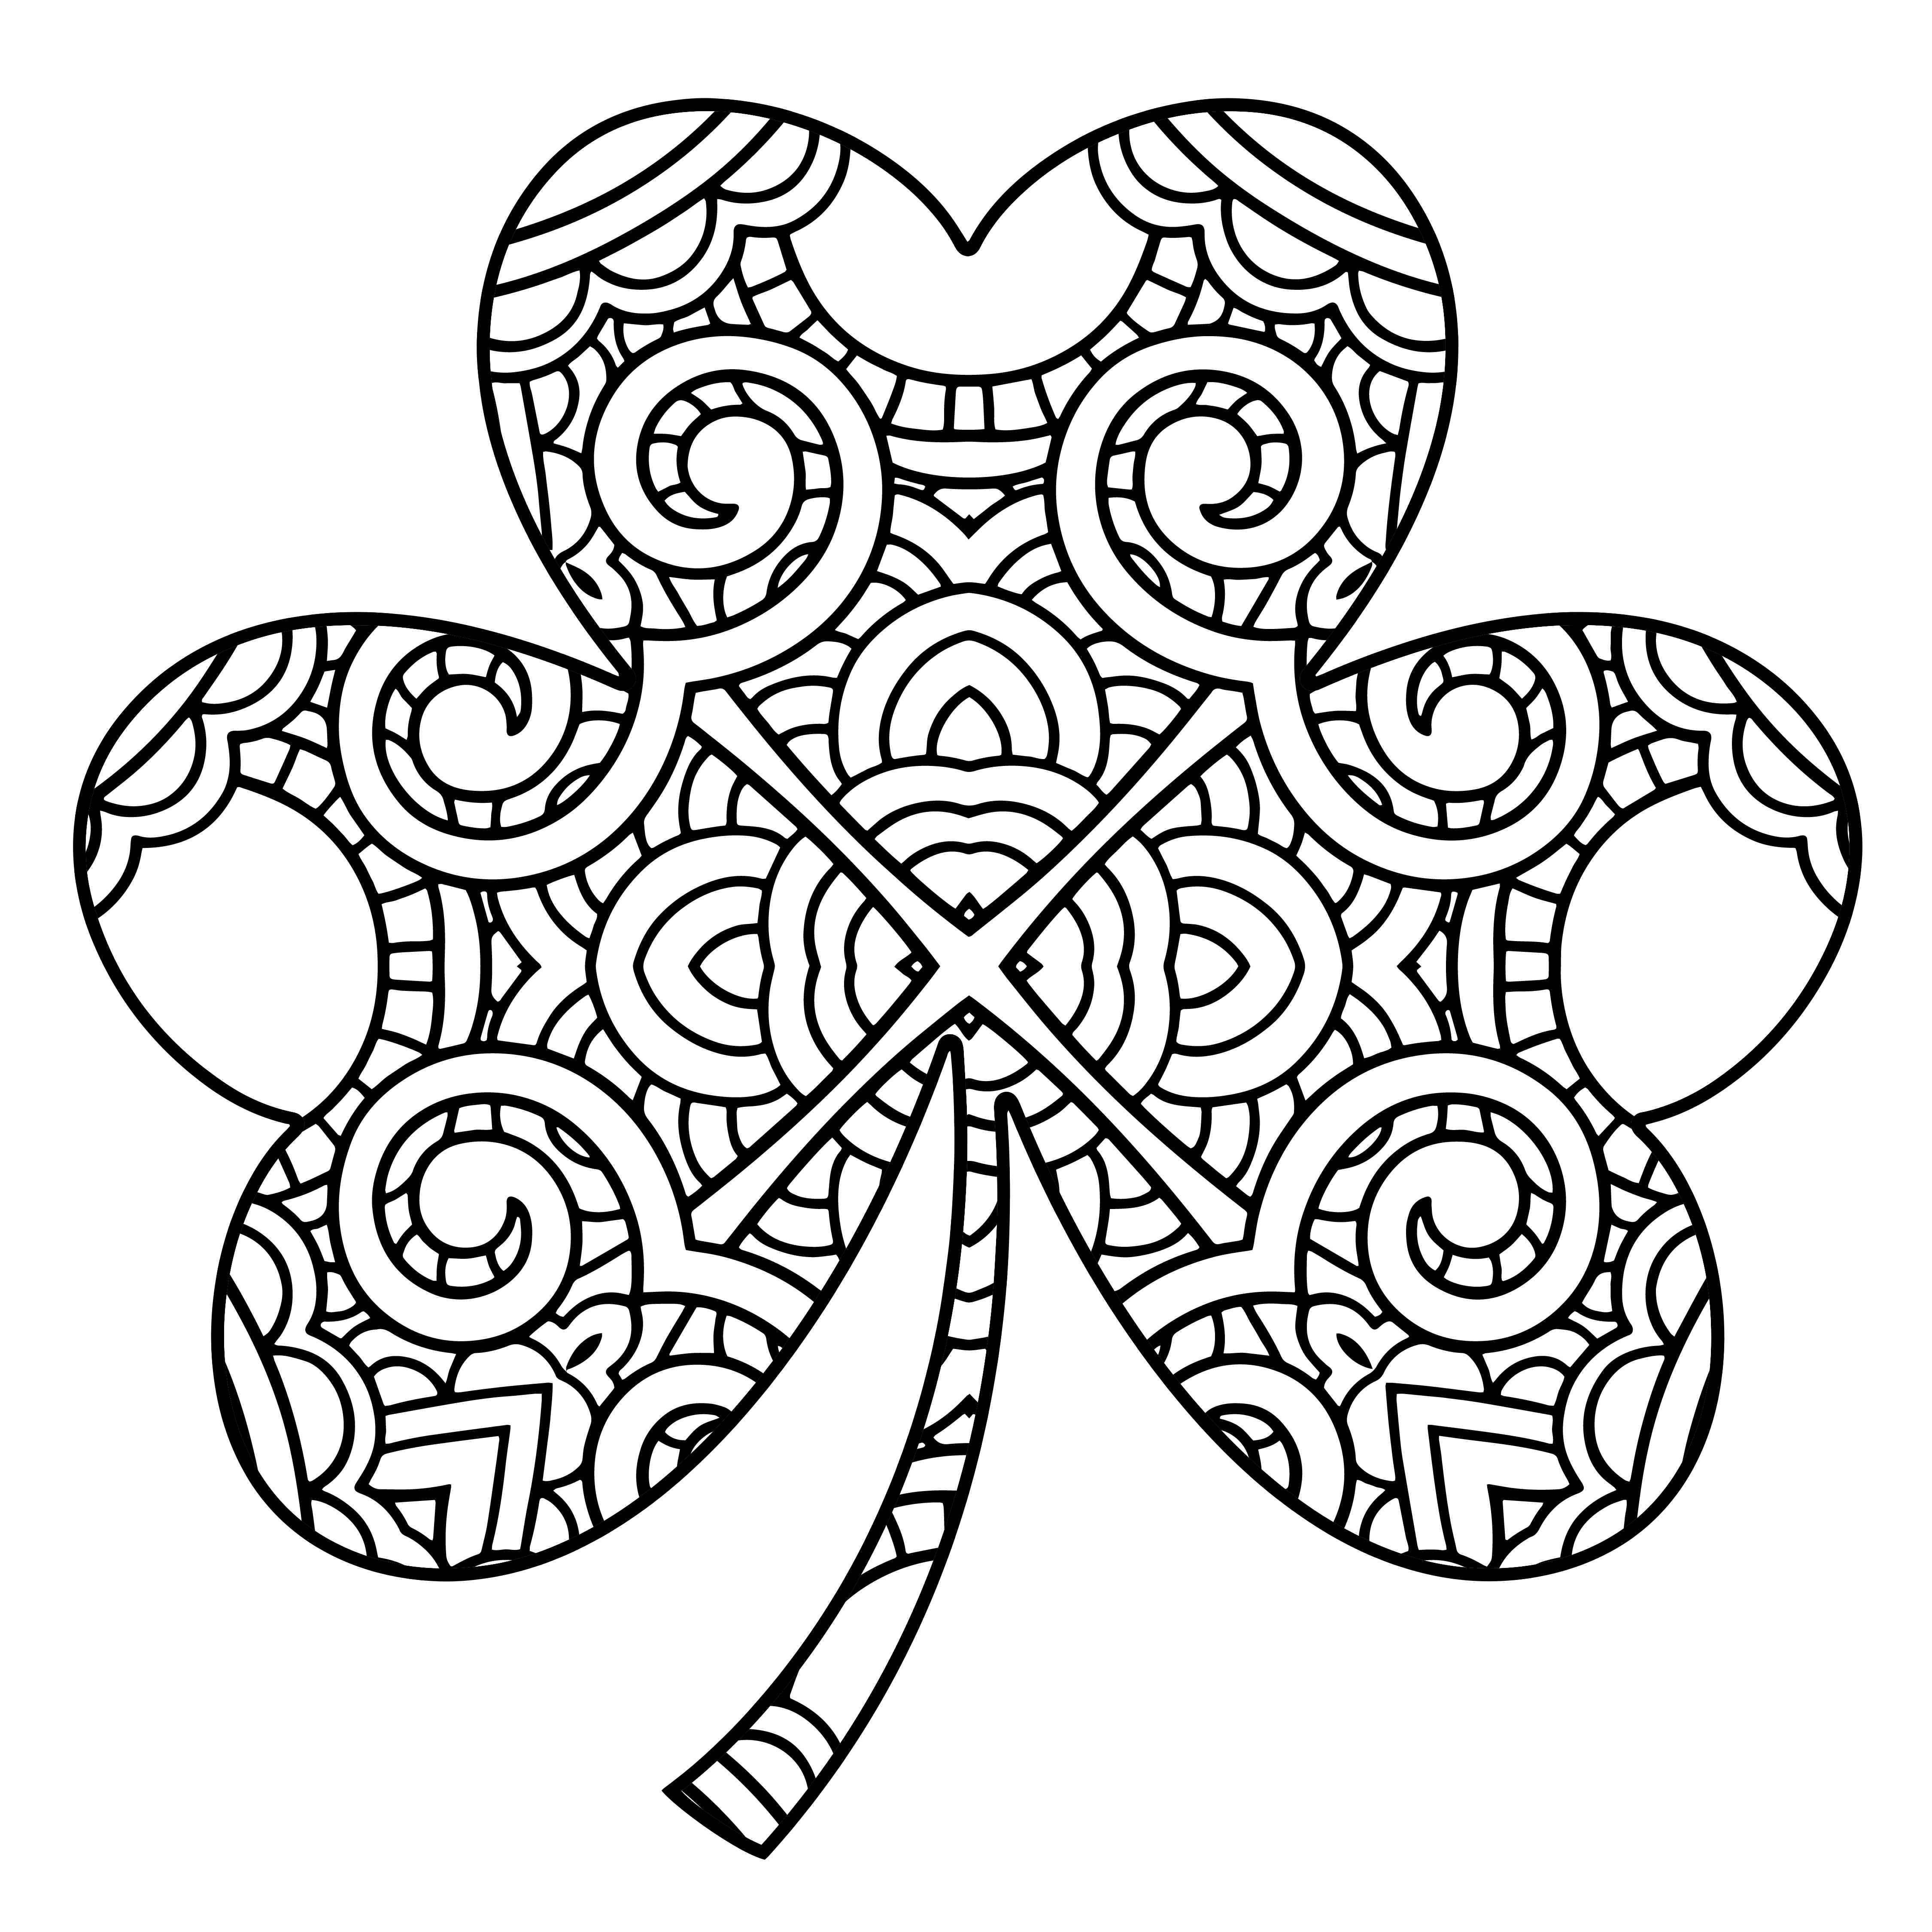 4500x4500 Shamrock Coloring Pages Coloring Pages Shamrock Coloring Page